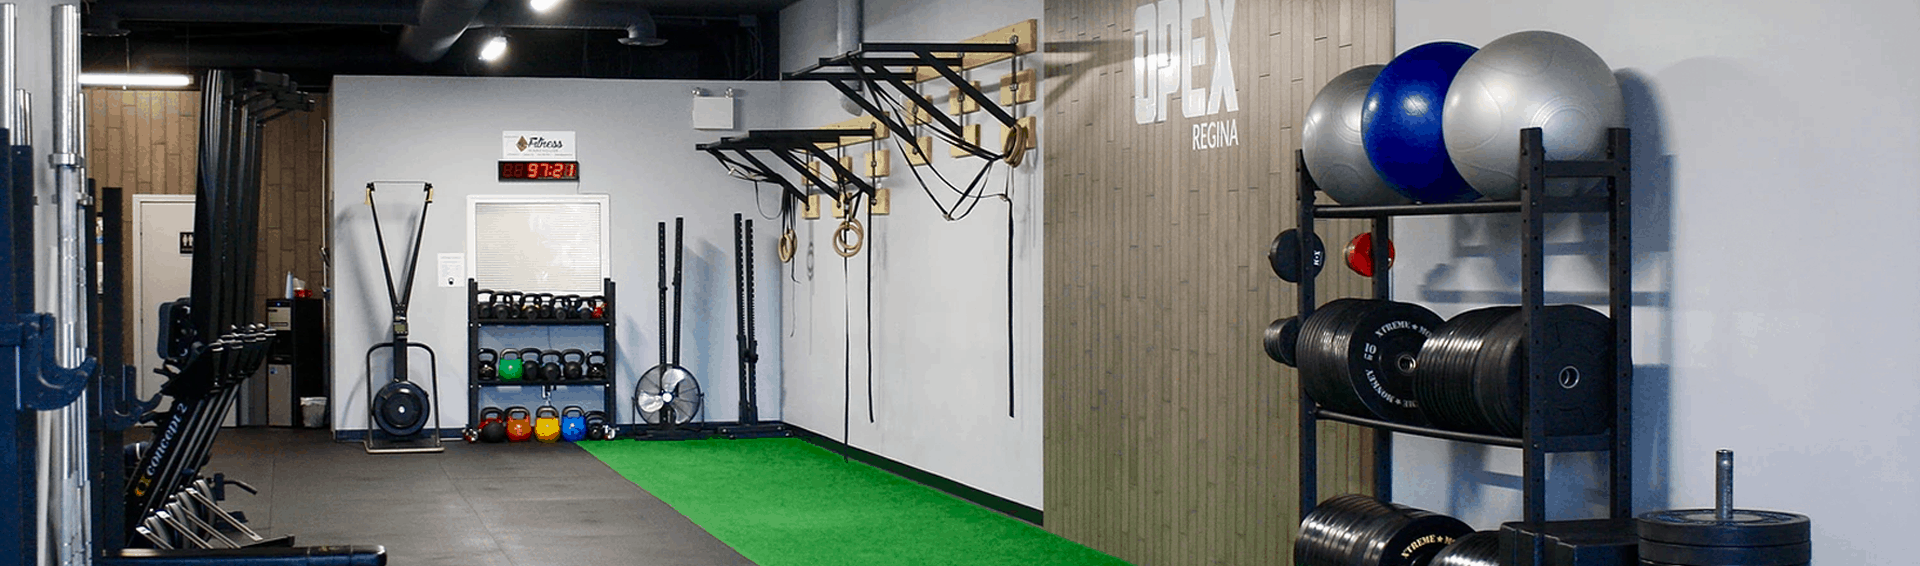 OPEX Regina: A Thriving Personalized Fitness Facility